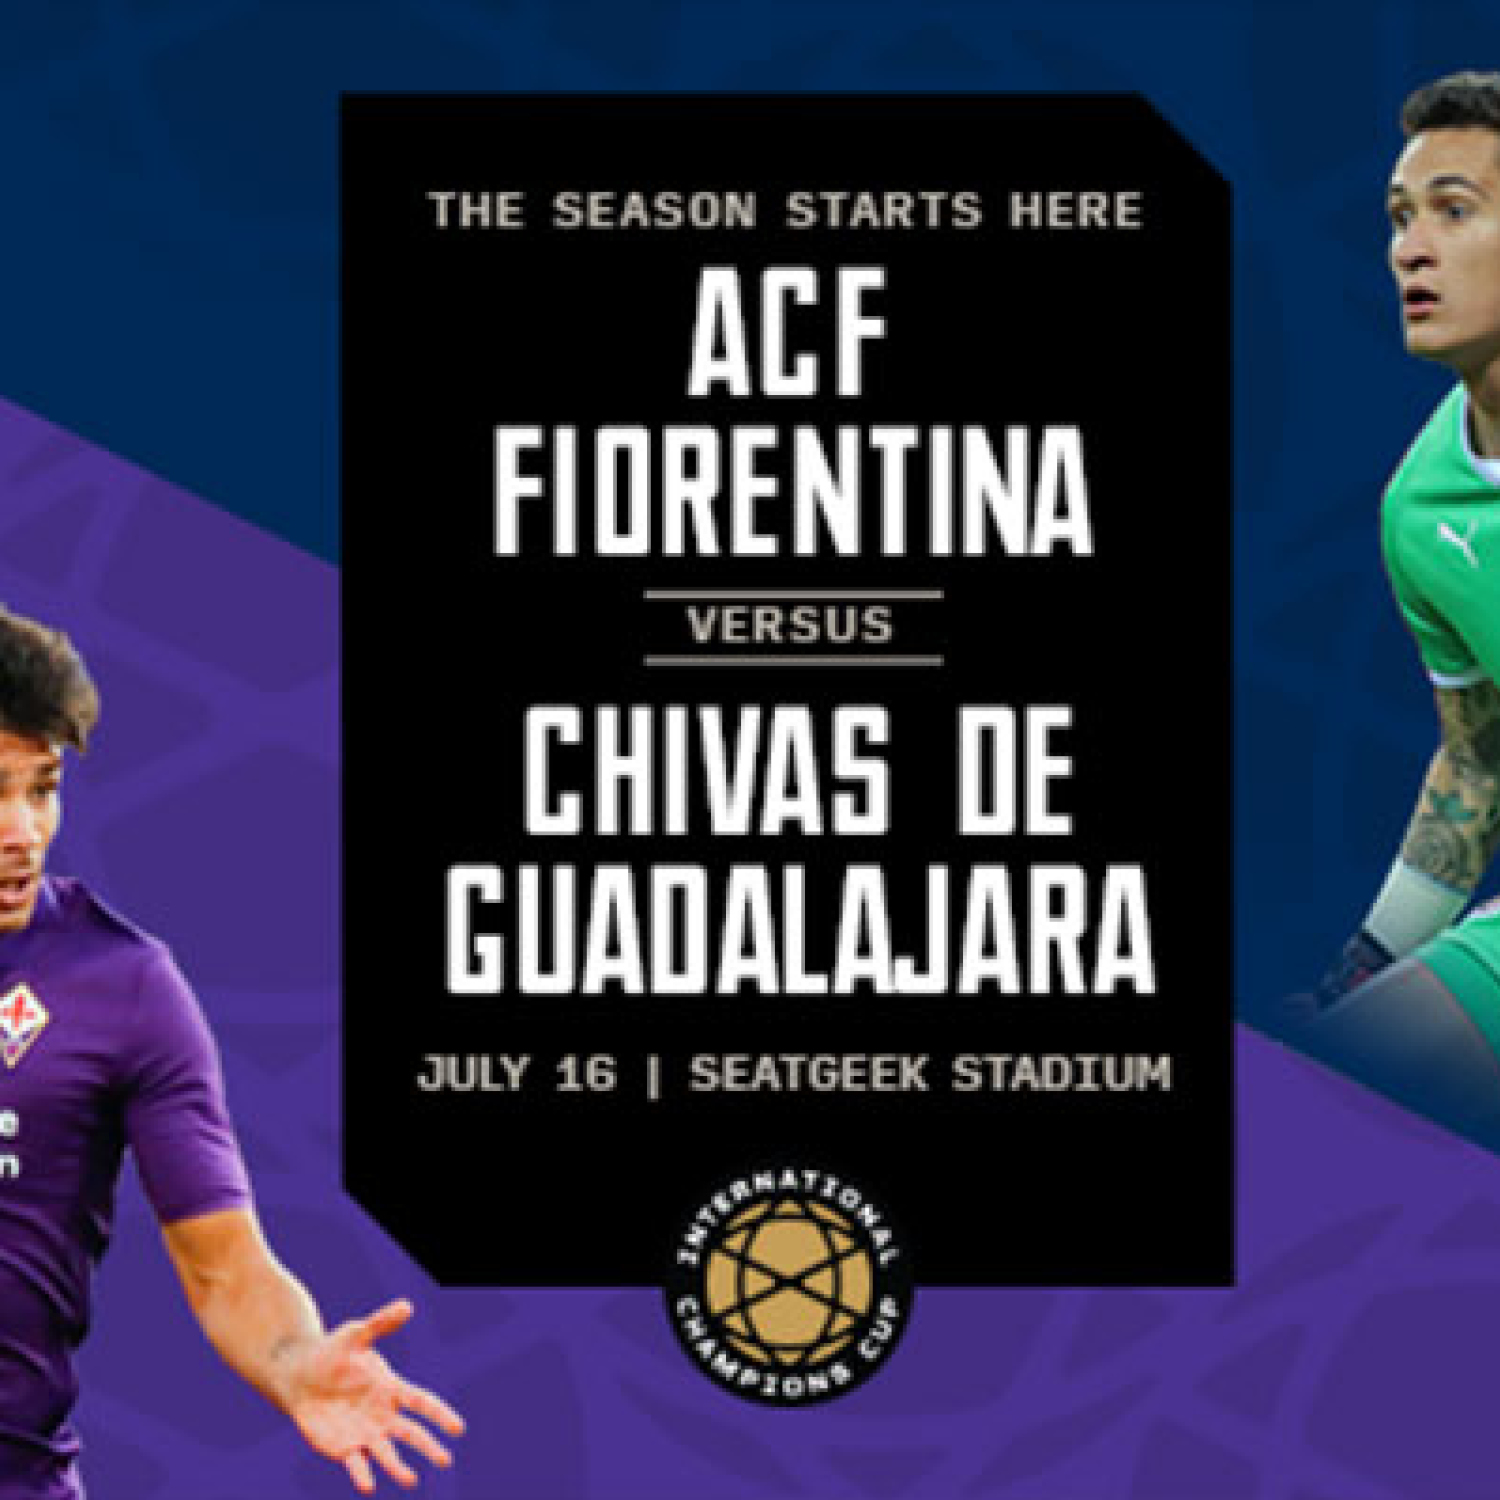 International Champions Cup - ACF Fiorentina vs. Chivas - Tuesday, July 16, 2019 • 8:00 PM